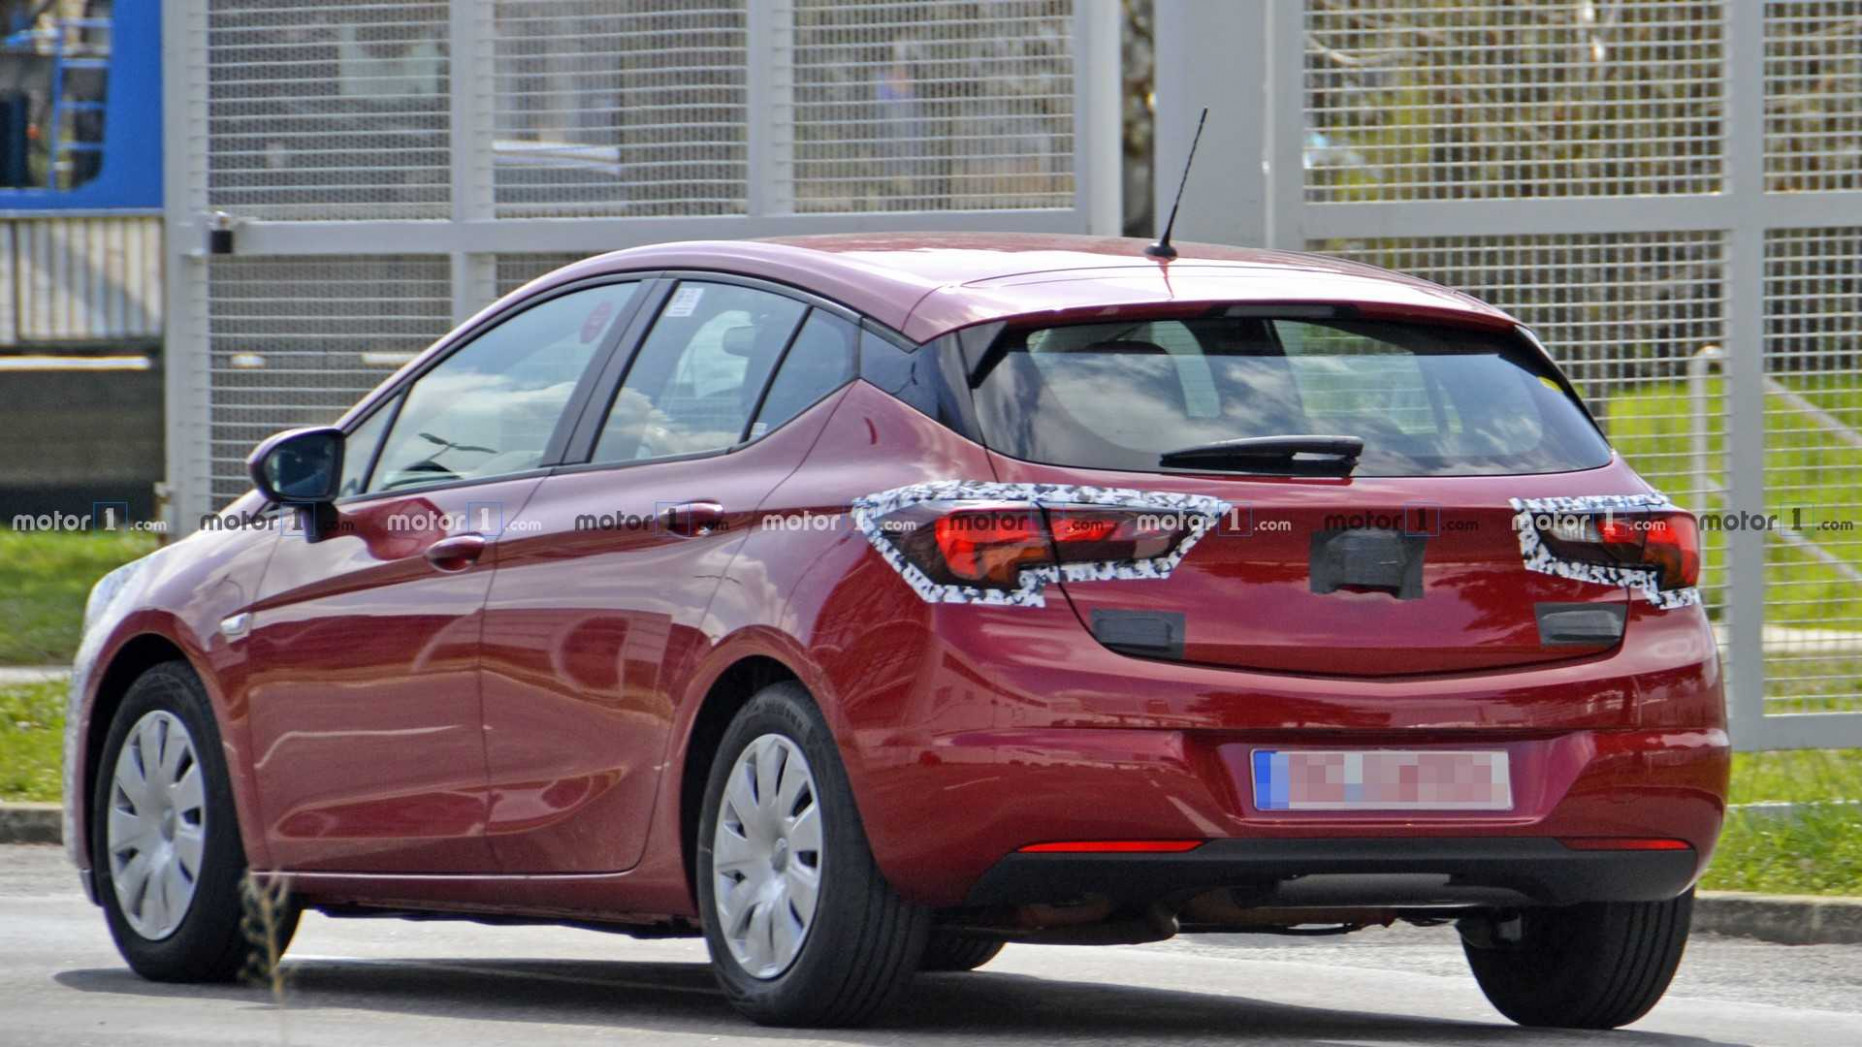 Opel Astra Facelift Sheds Some Camo In New Spy Photos - 2020 opel astra facelift